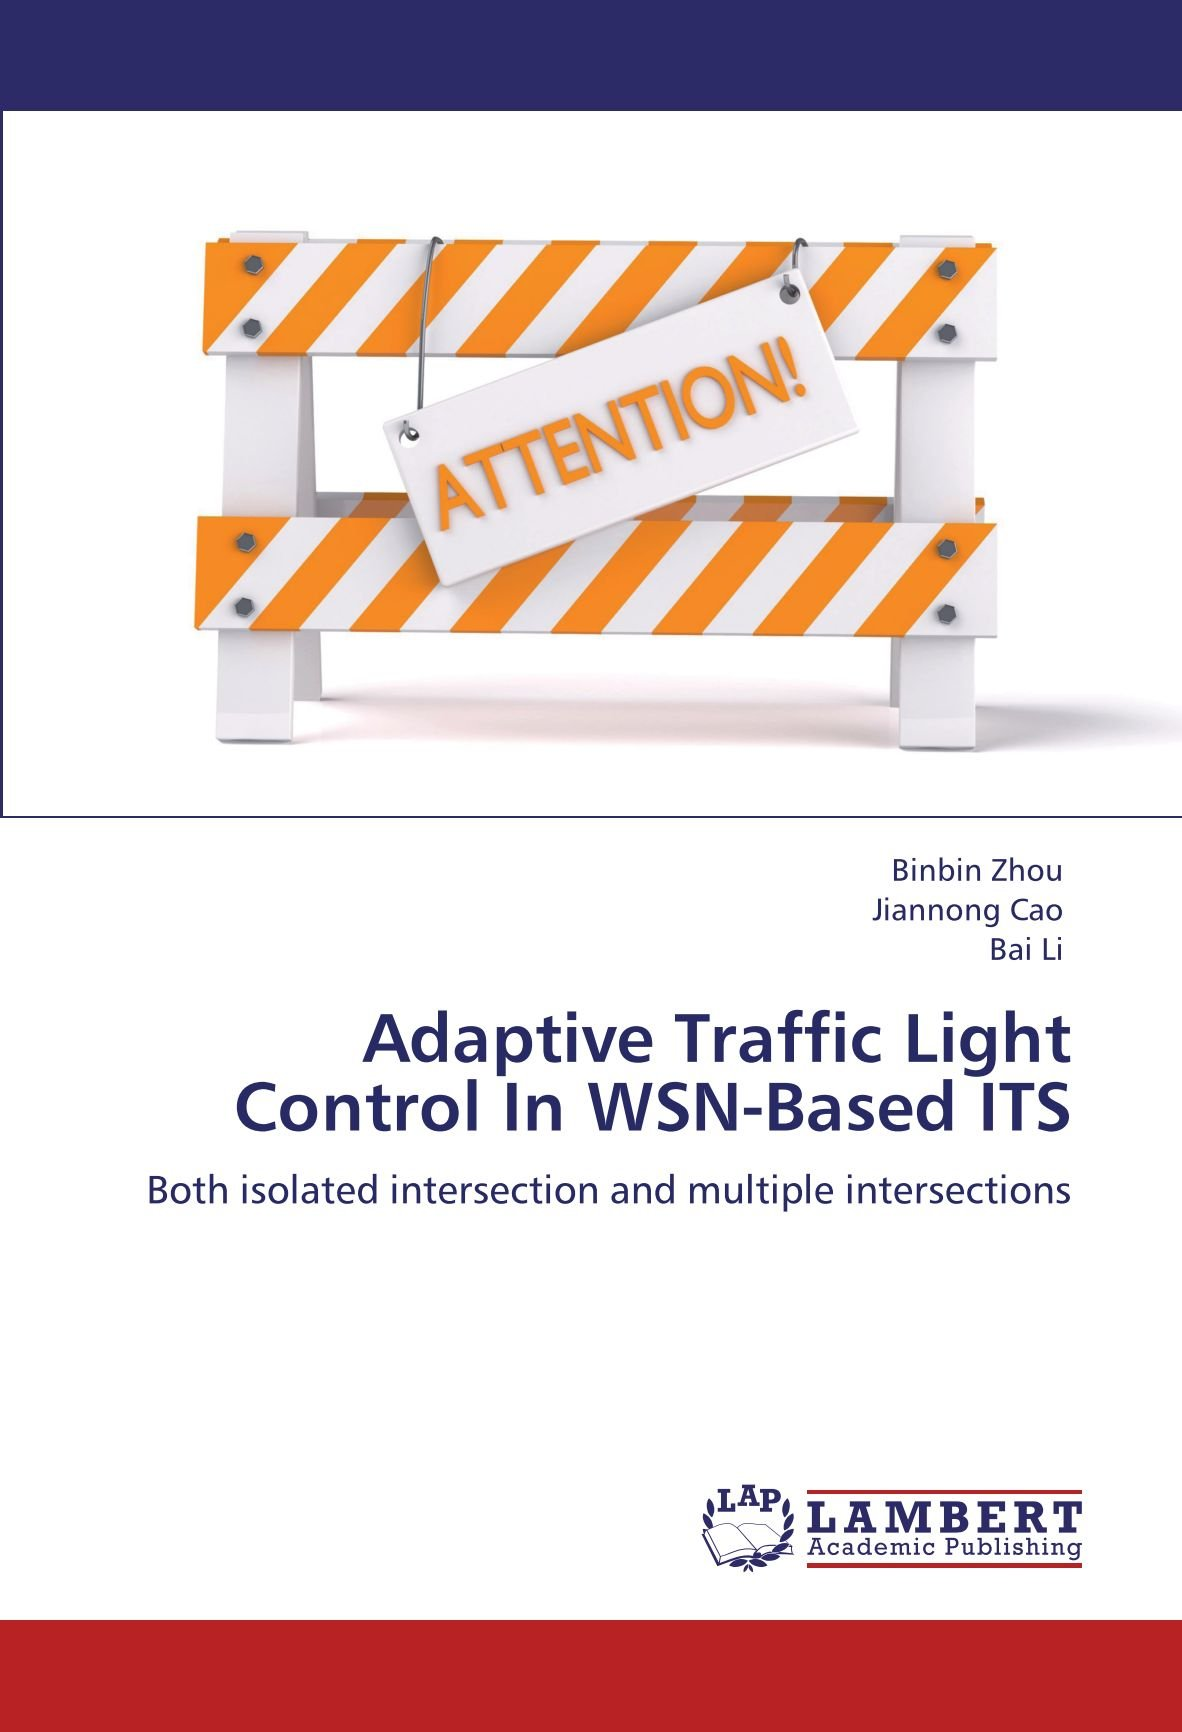 Adaptive Traffic Light Control In WSN-Based ITS: Both isolated intersection and multiple intersections PDF